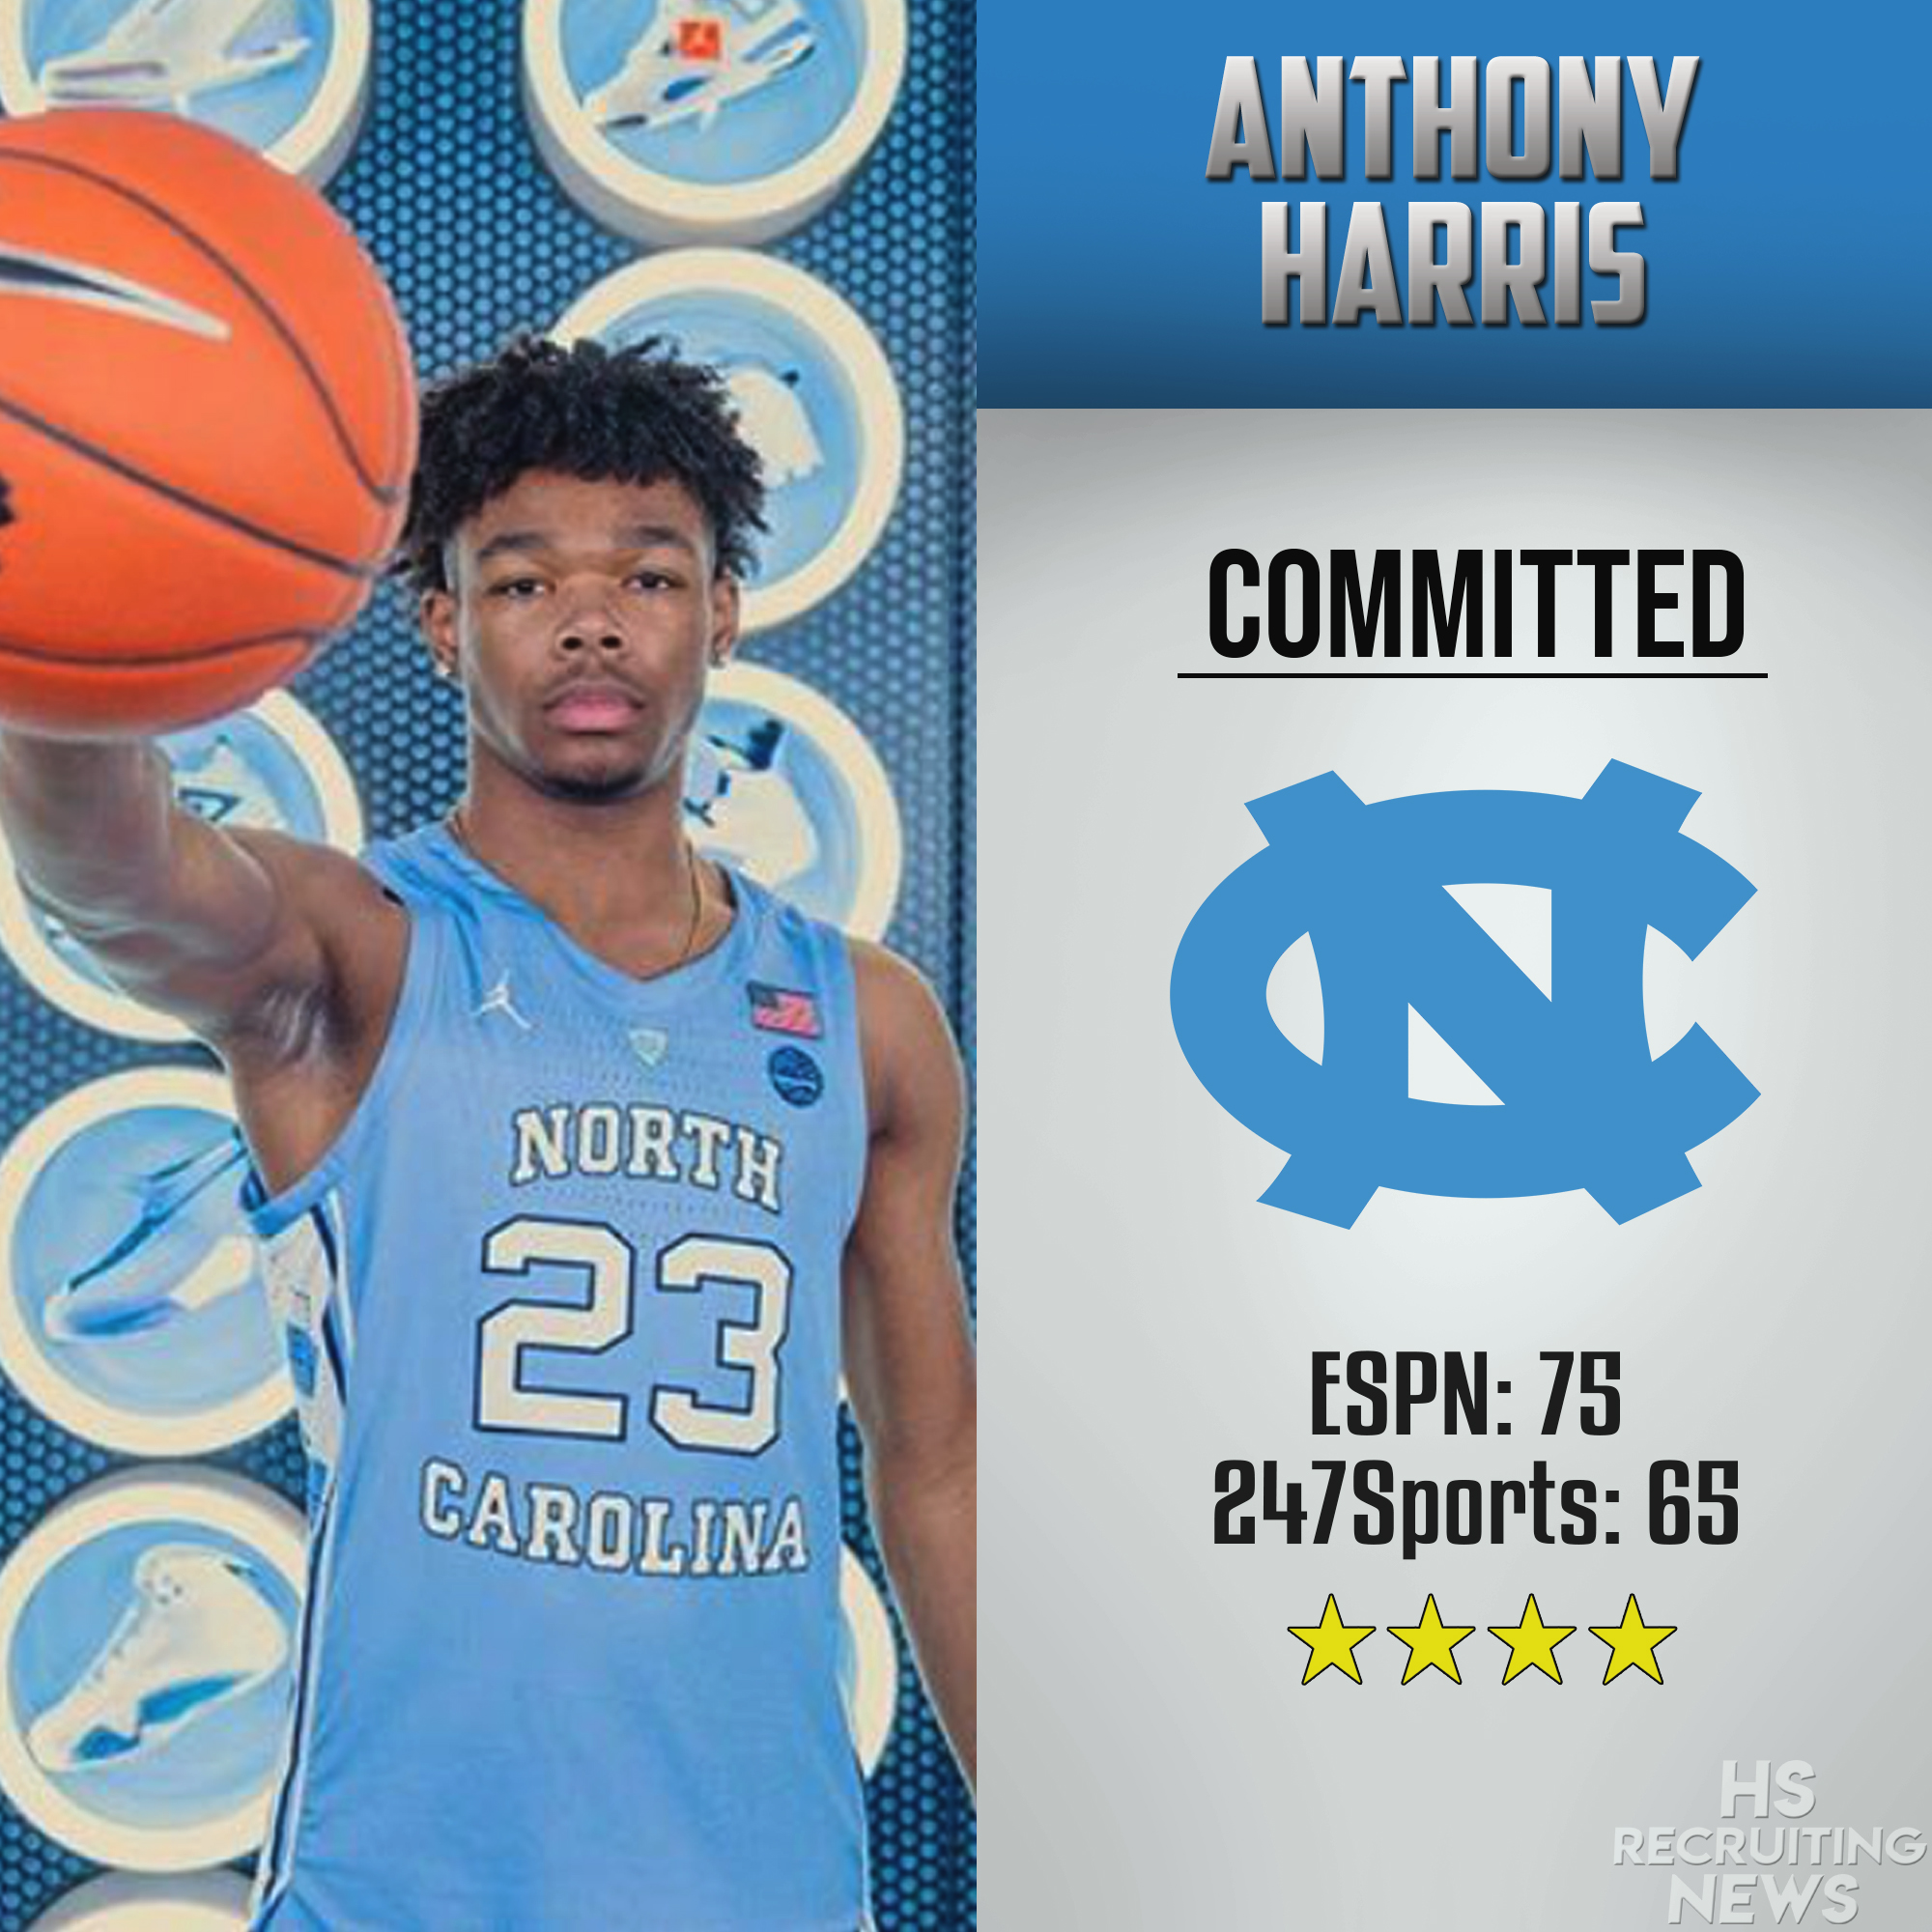 info for c46a9 f33e6 Anthony Harris commits to UNC – HS Recruiting News